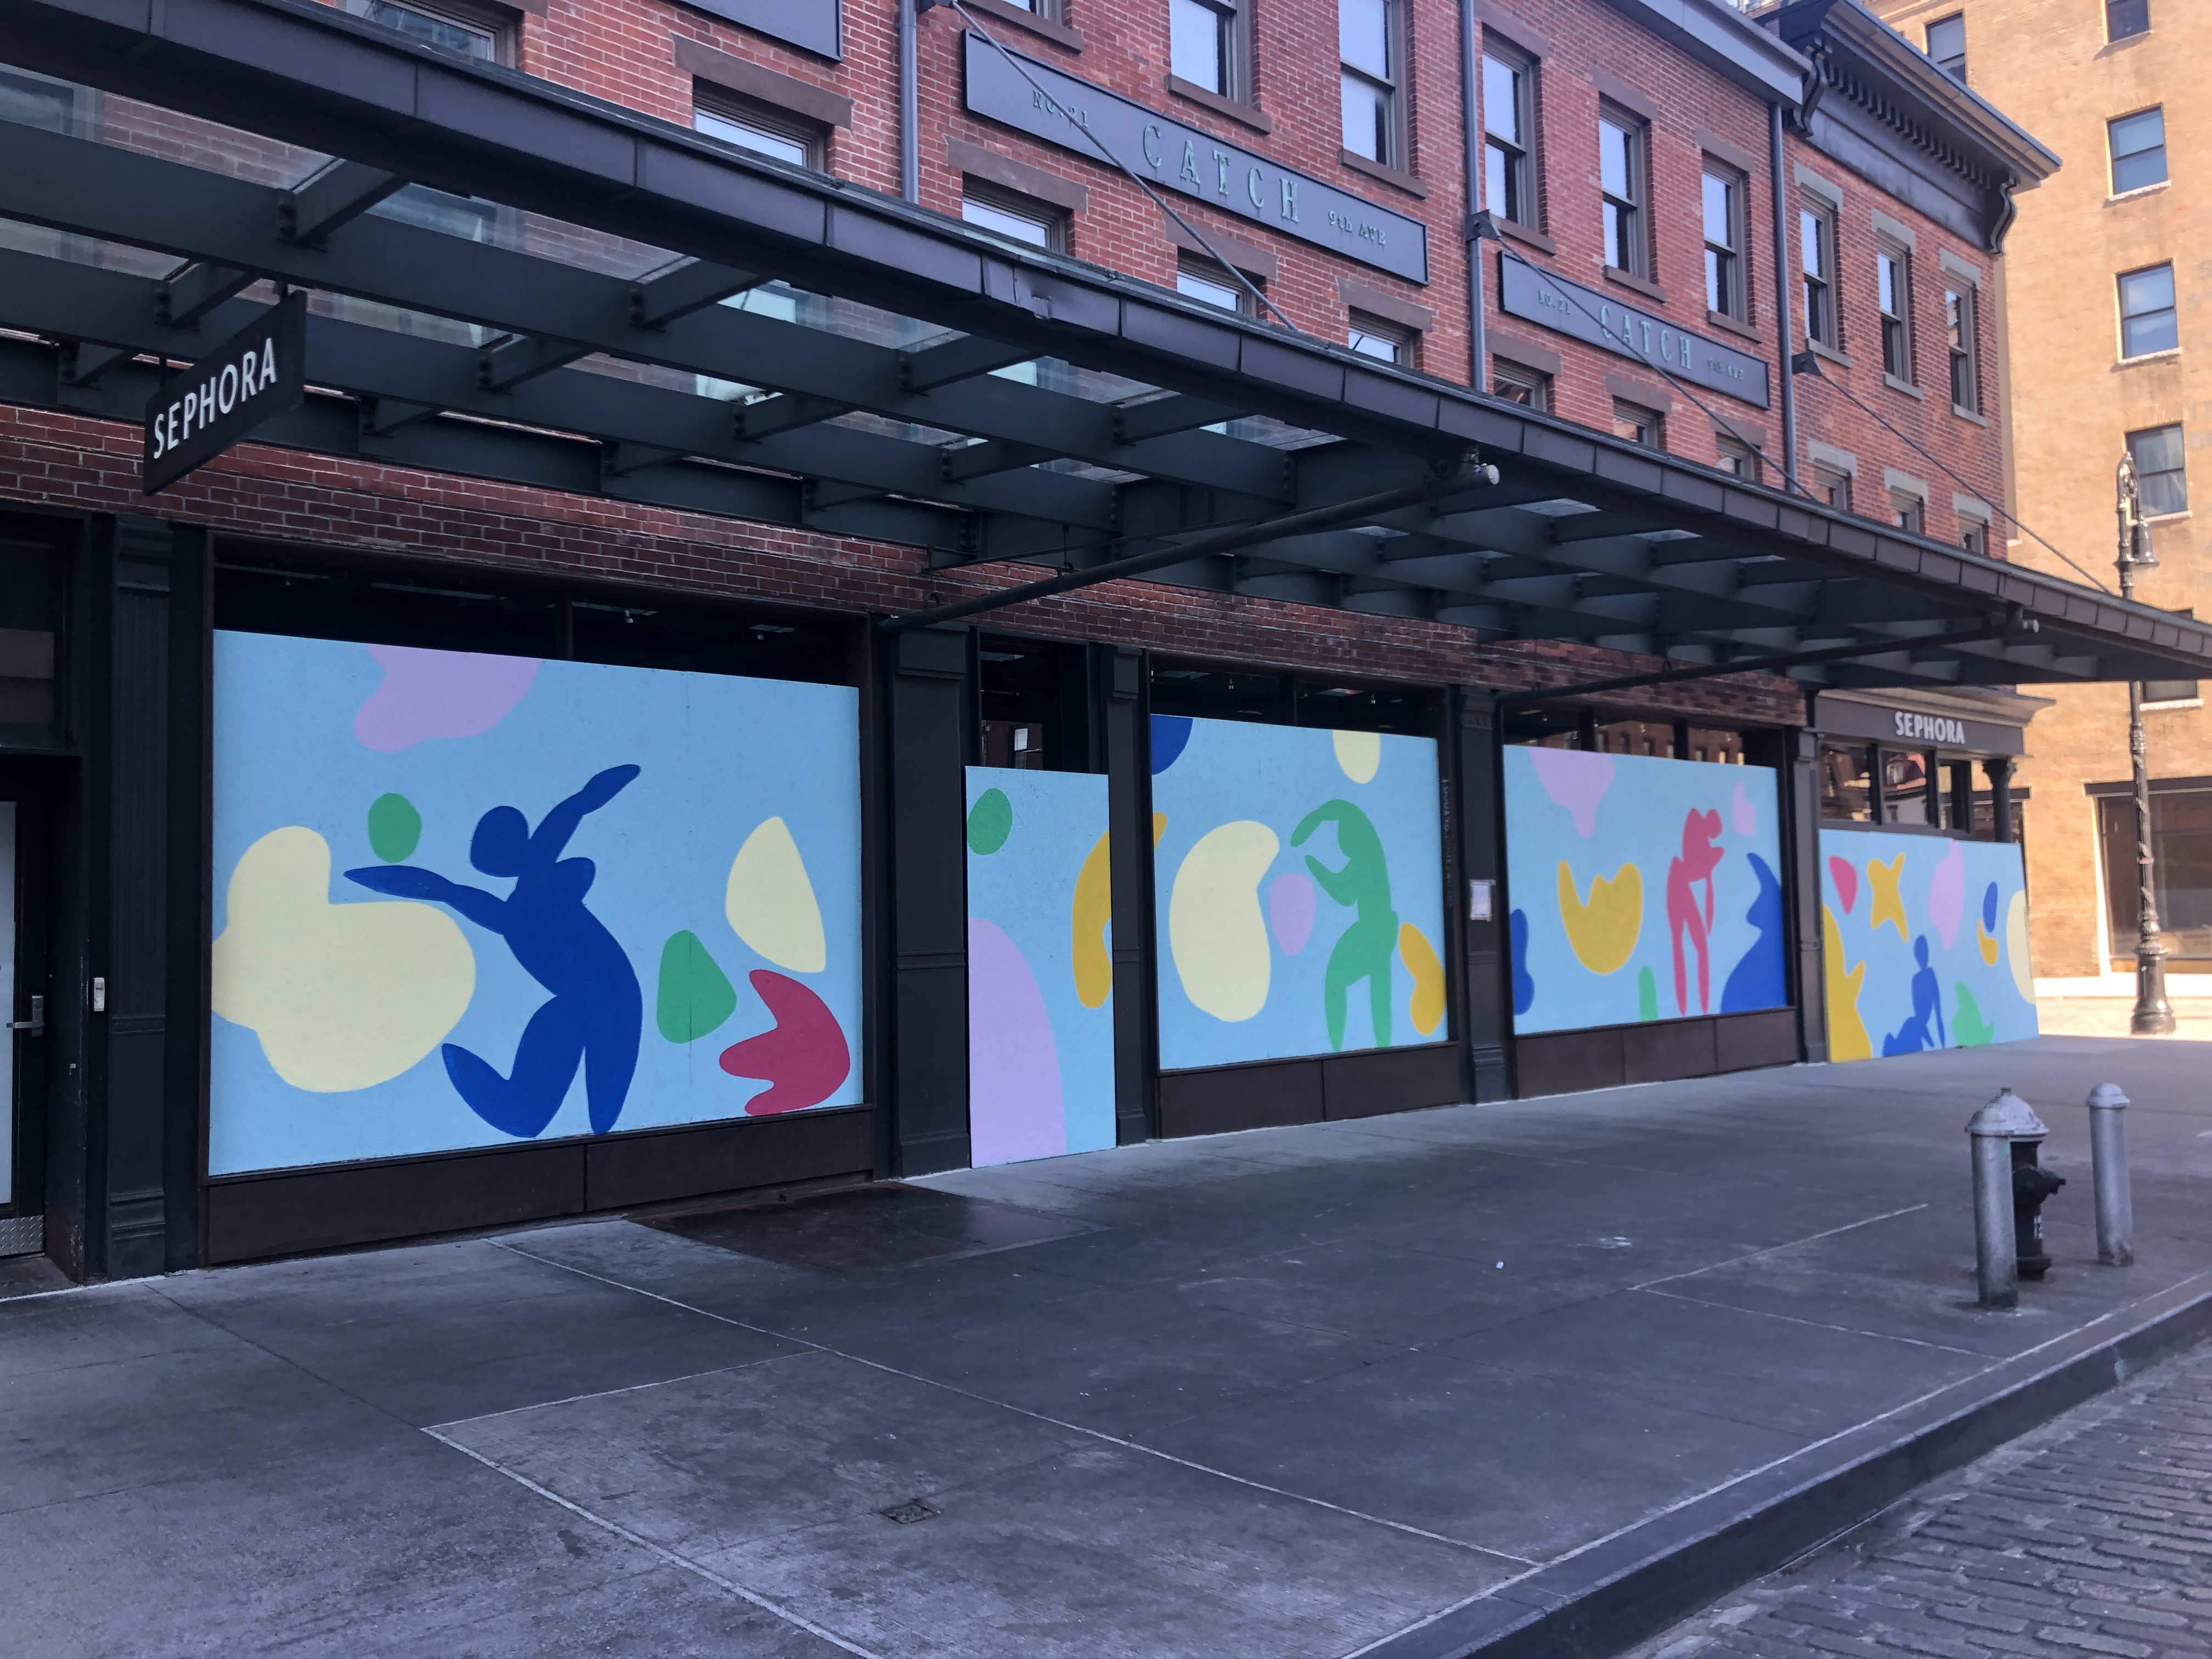 An artist was asked to paint a mural on Sephora's boarded-up Meatpacking District store.